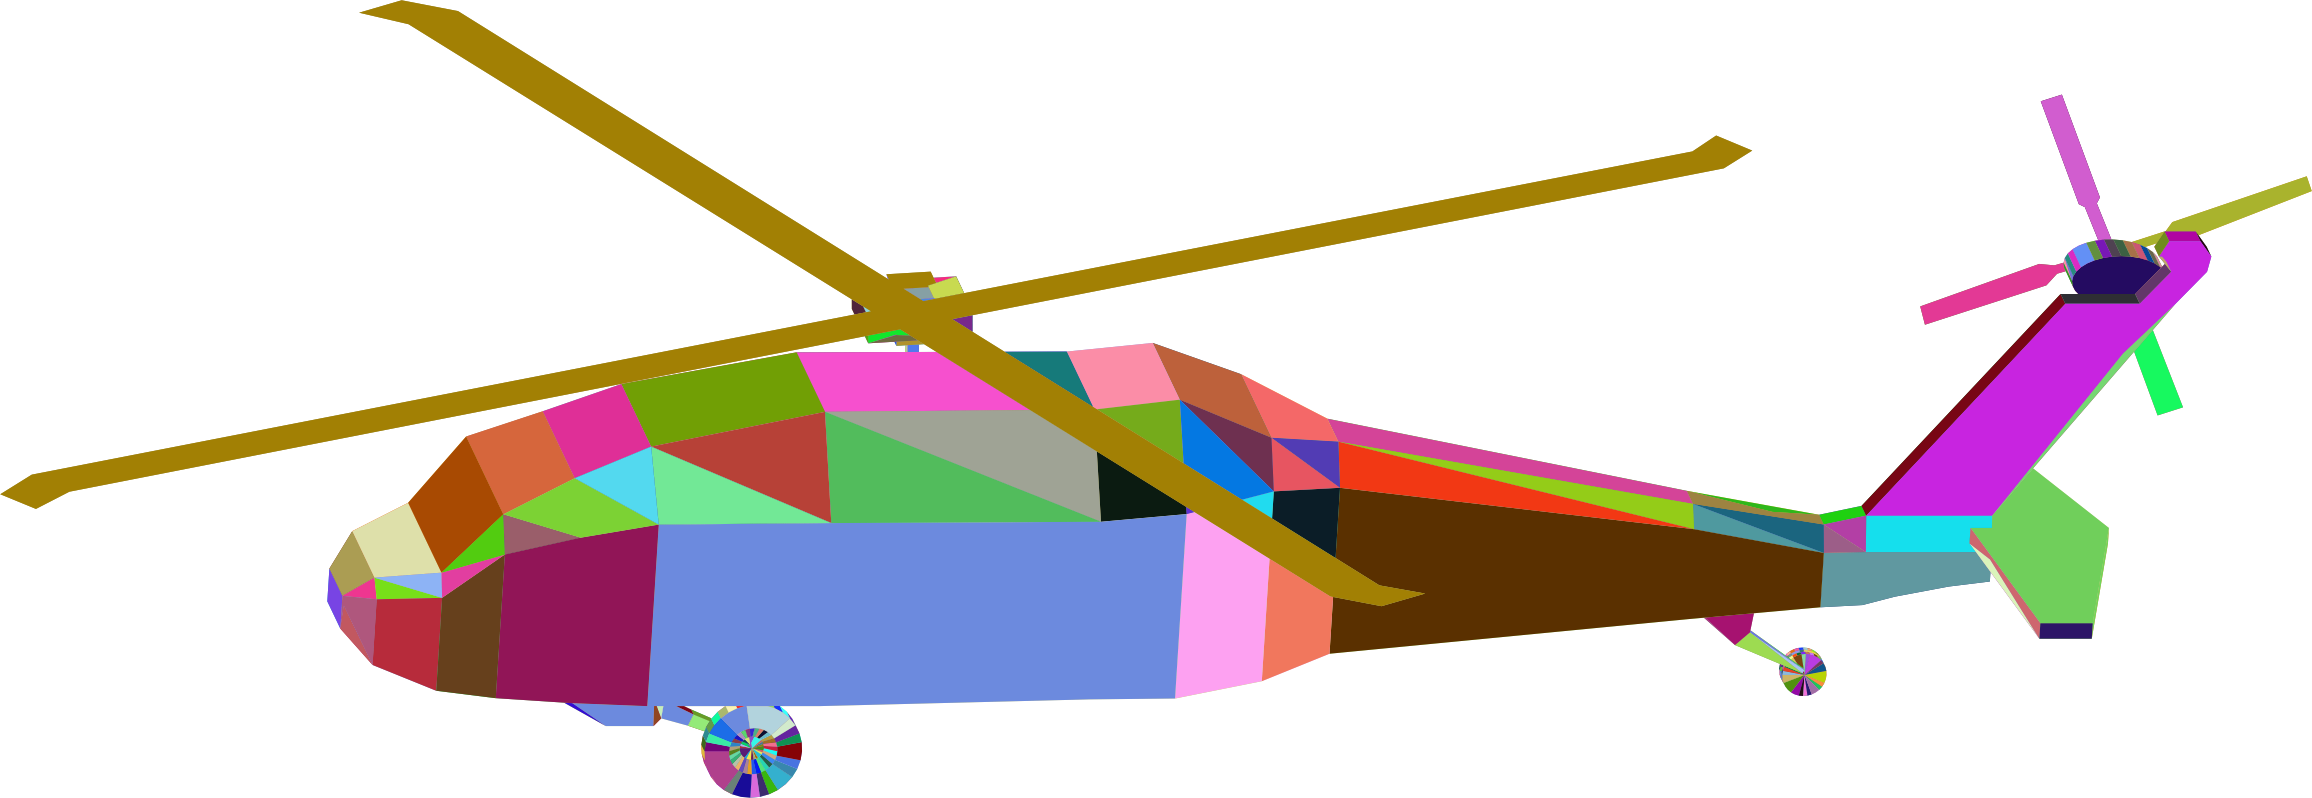 3D Low Poly Blackhawk Helicopter Prismatic by GDJ